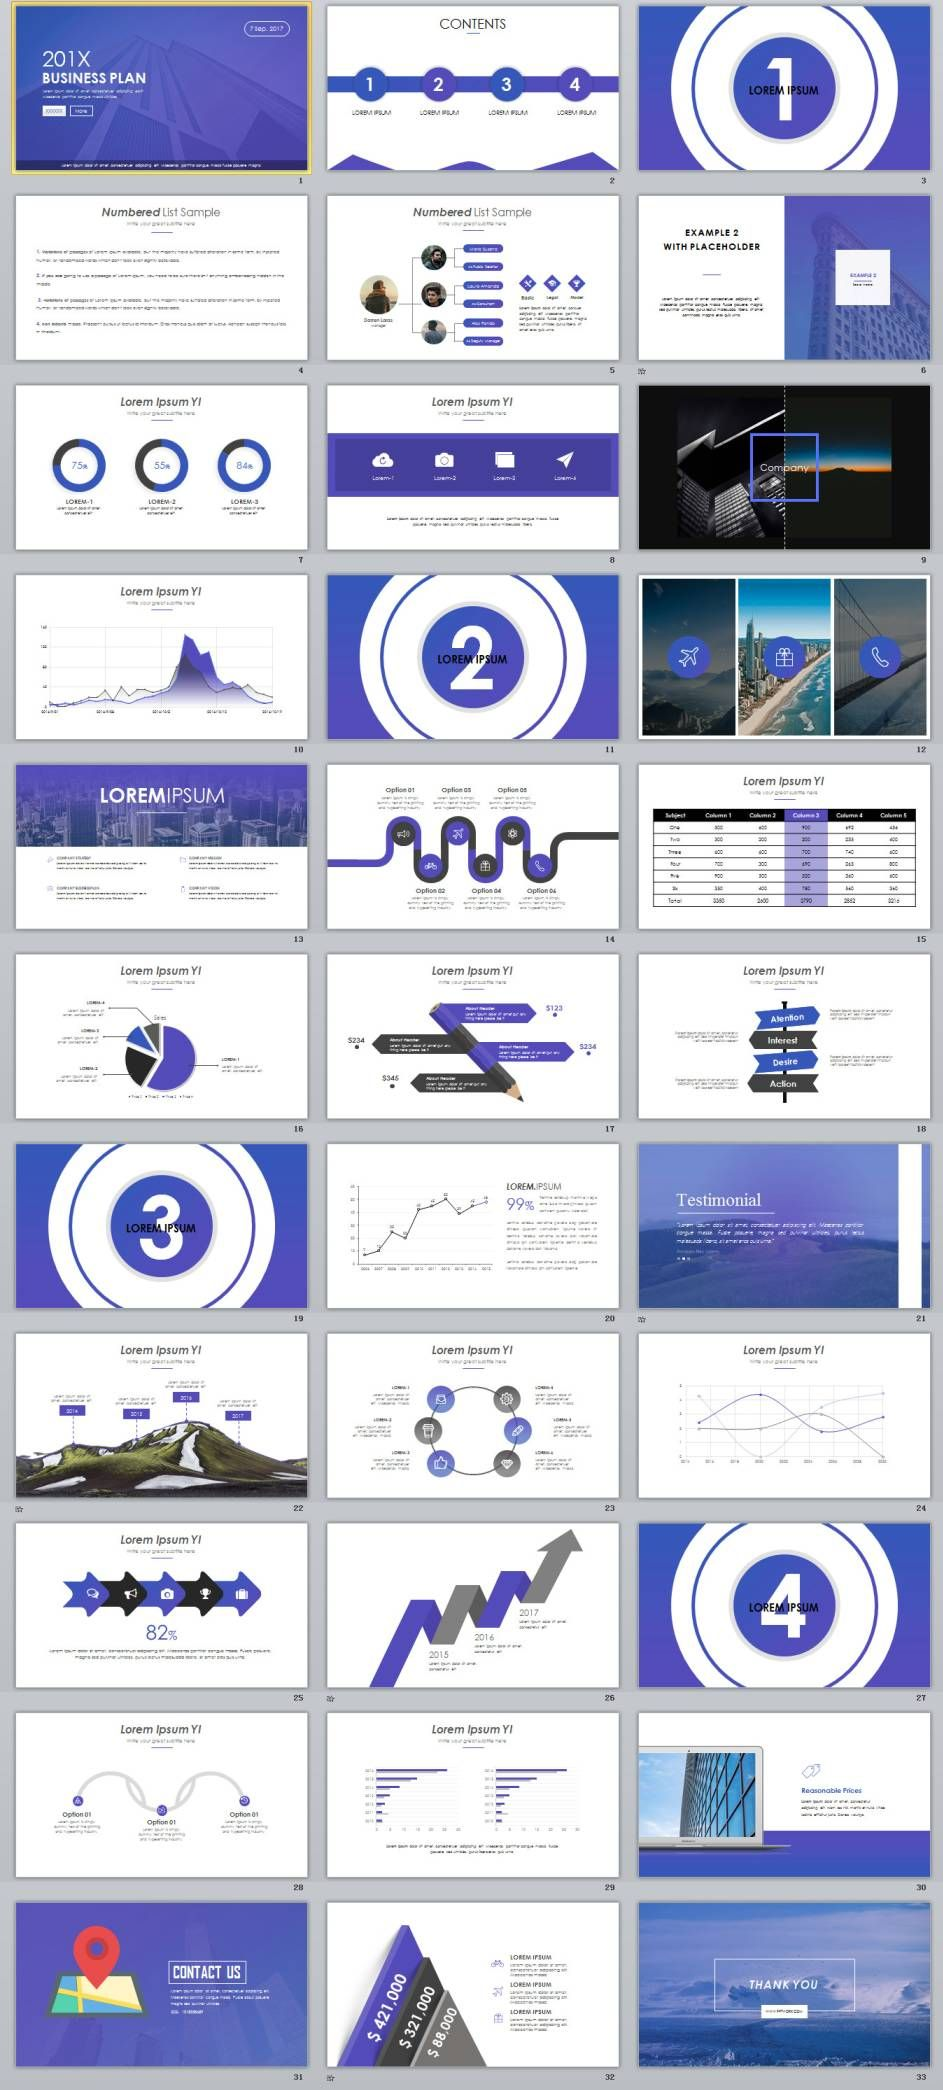 33 business plan chart powerpoint template inspiration 33 business plan chart powerpoint template toneelgroepblik Images